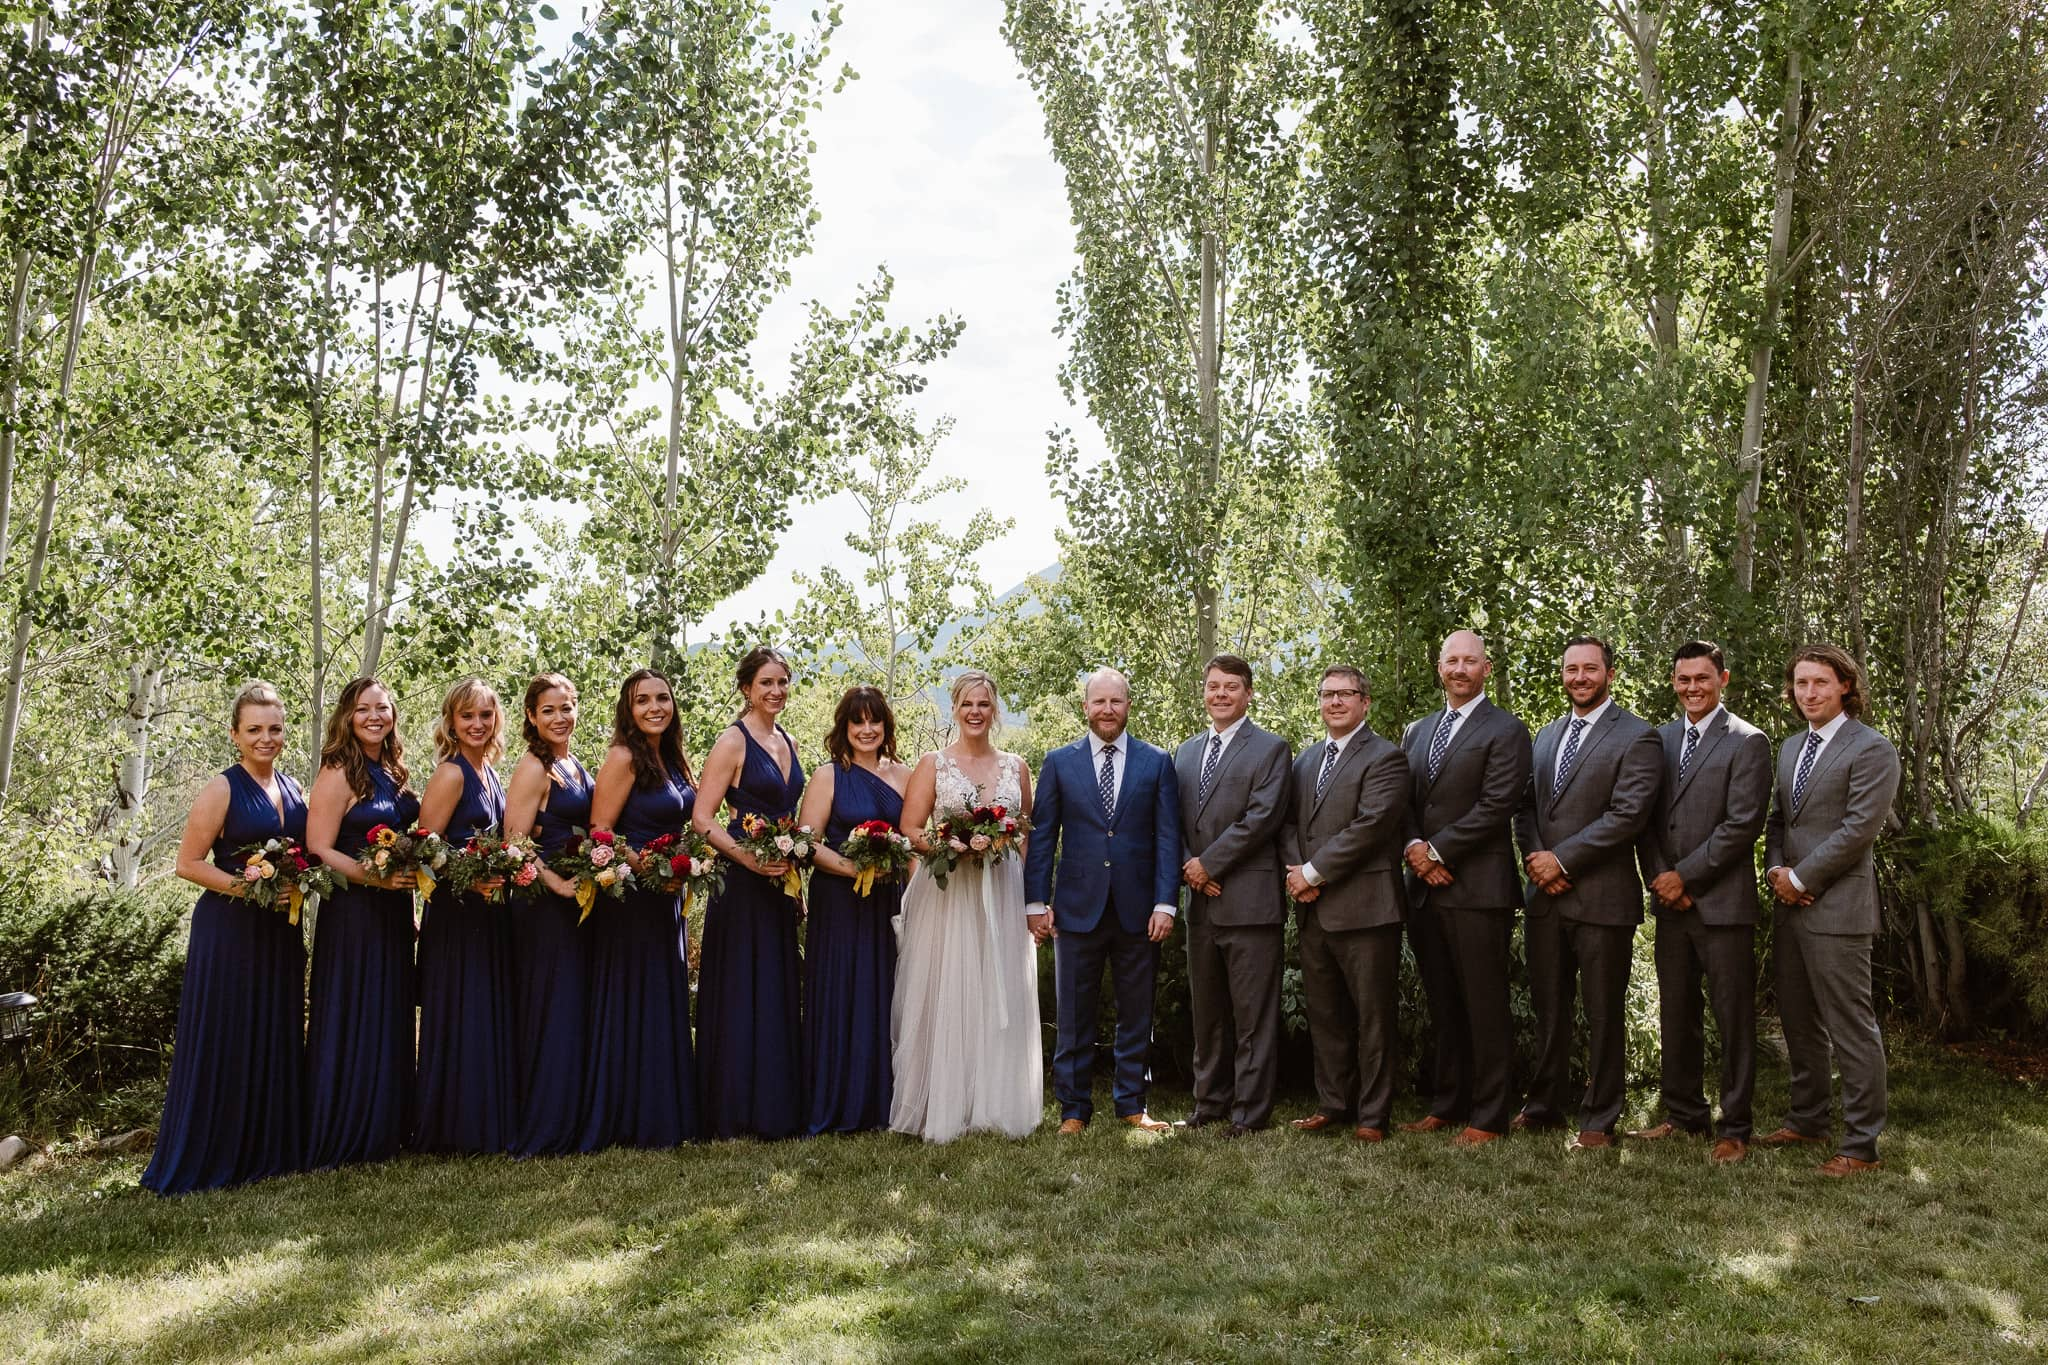 Steamboat Springs wedding photographer, La Joya Dulce wedding, Colorado ranch wedding venues, bride and groom with wedding party, bridesmaids in navy dresses, dark gray groomsmen suits